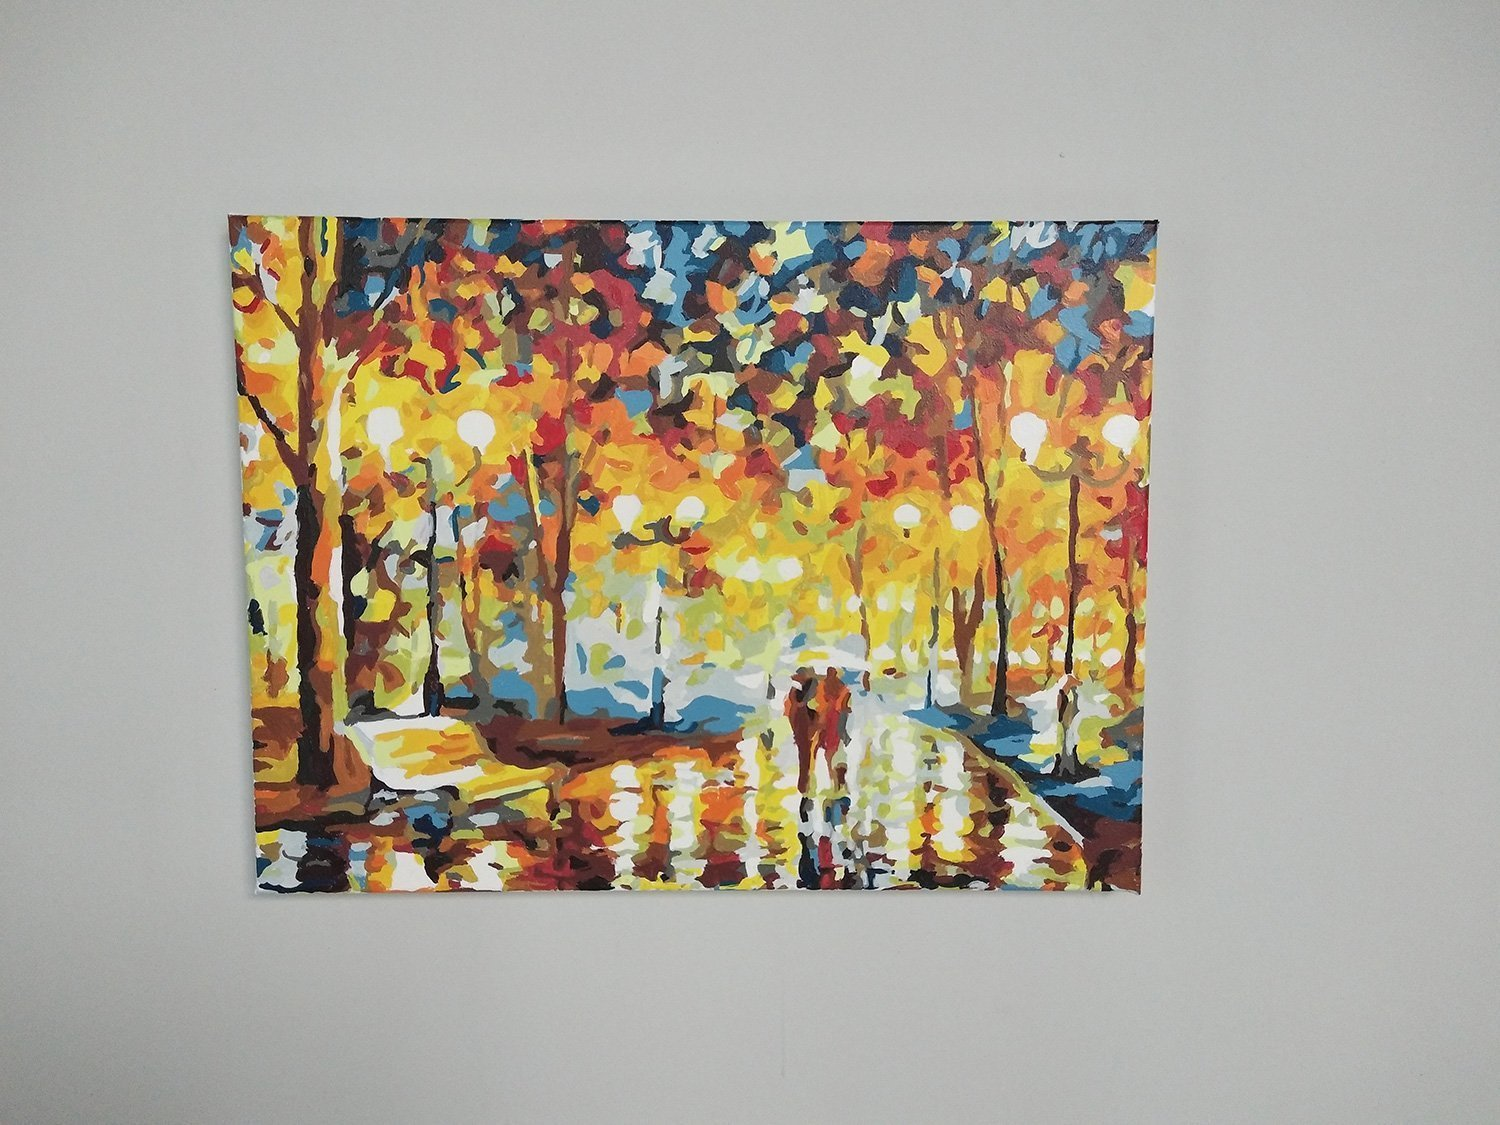 DIY Paint by Numbers for Adults - Customer Masterpiece - Number 1